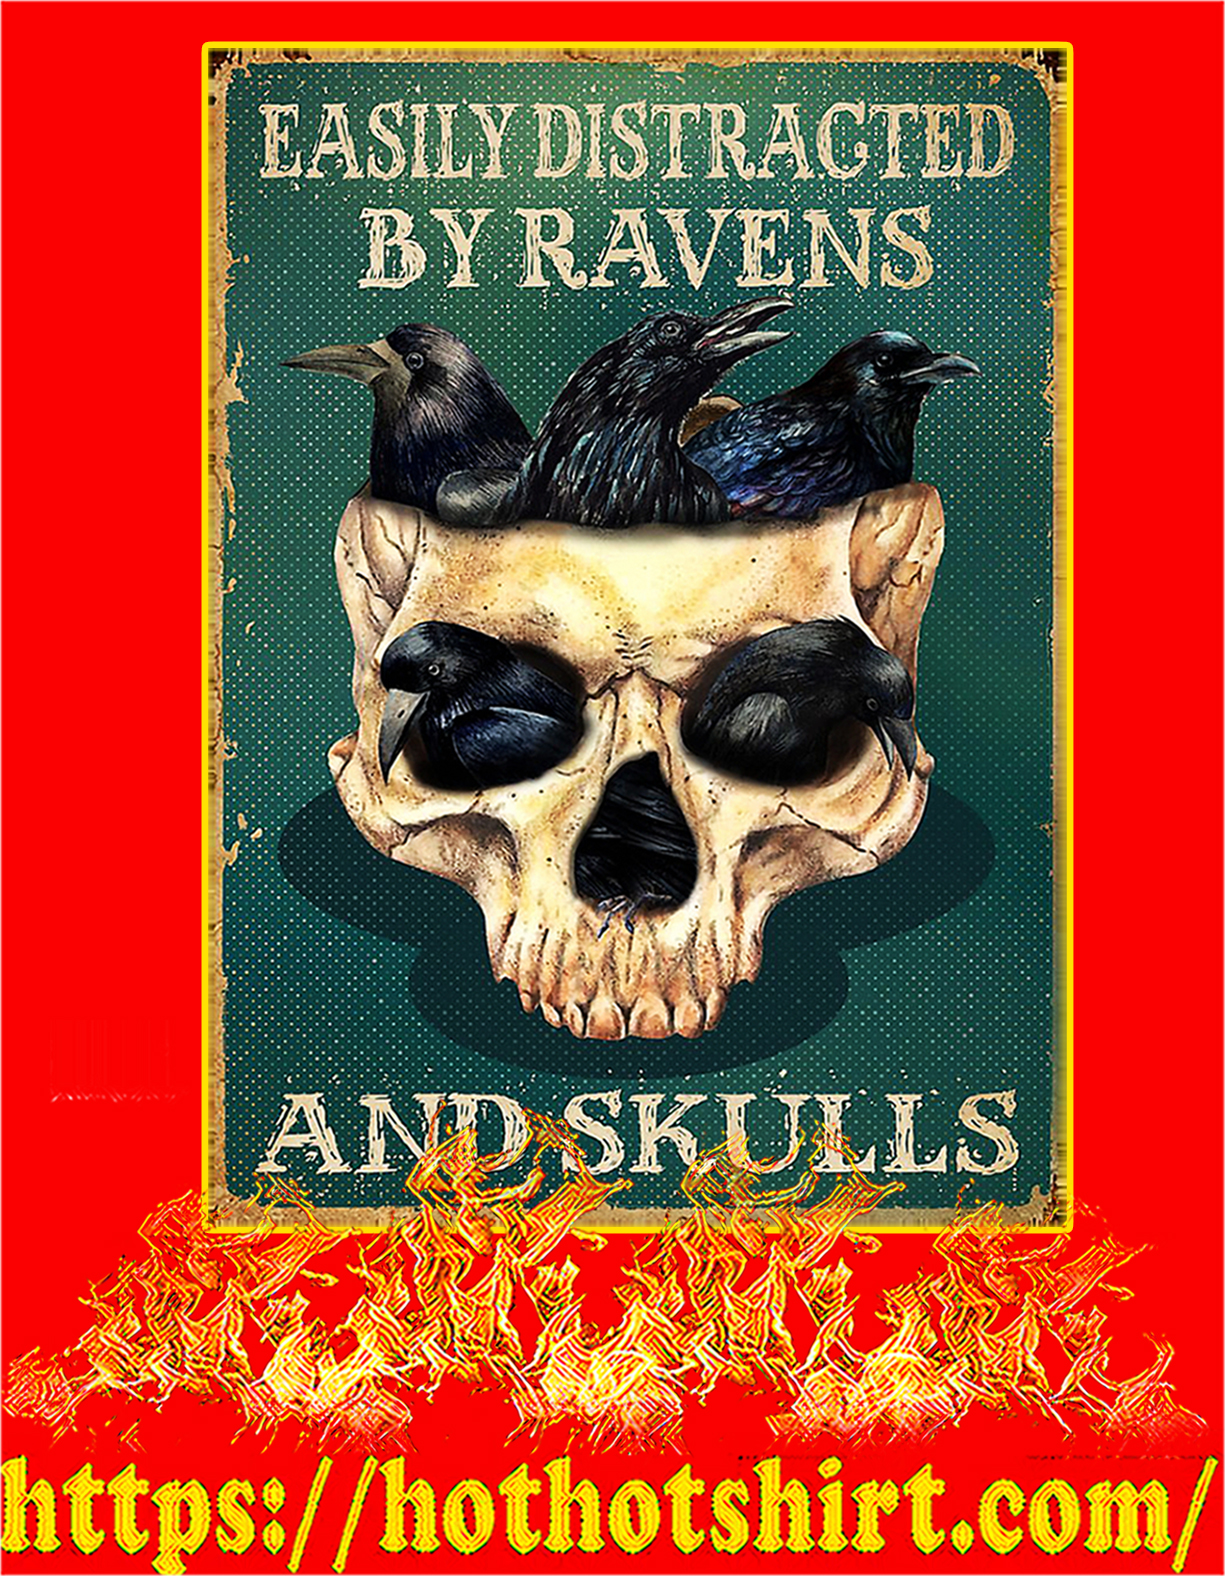 Easily distracted by ravens and skulls poster - A4